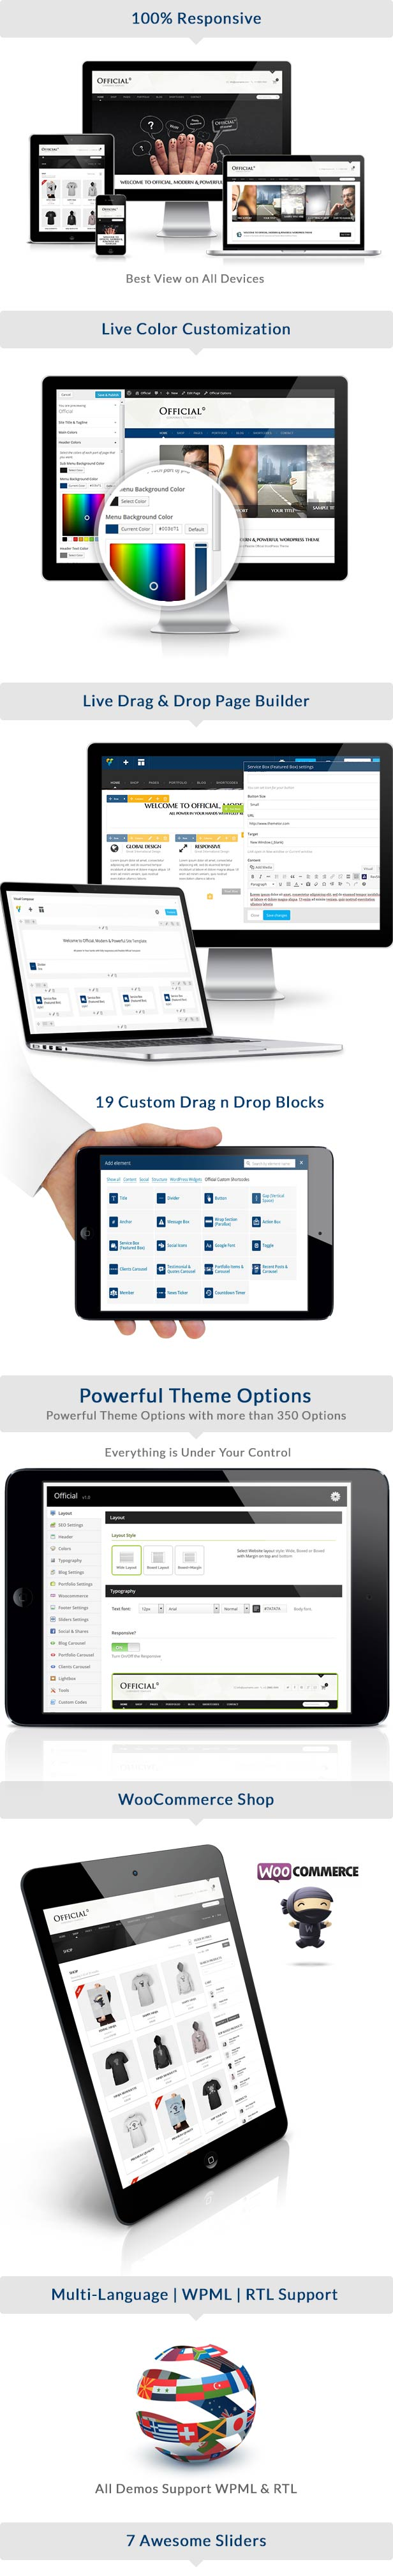 official3 - Official Website WordPress Theme + RTL